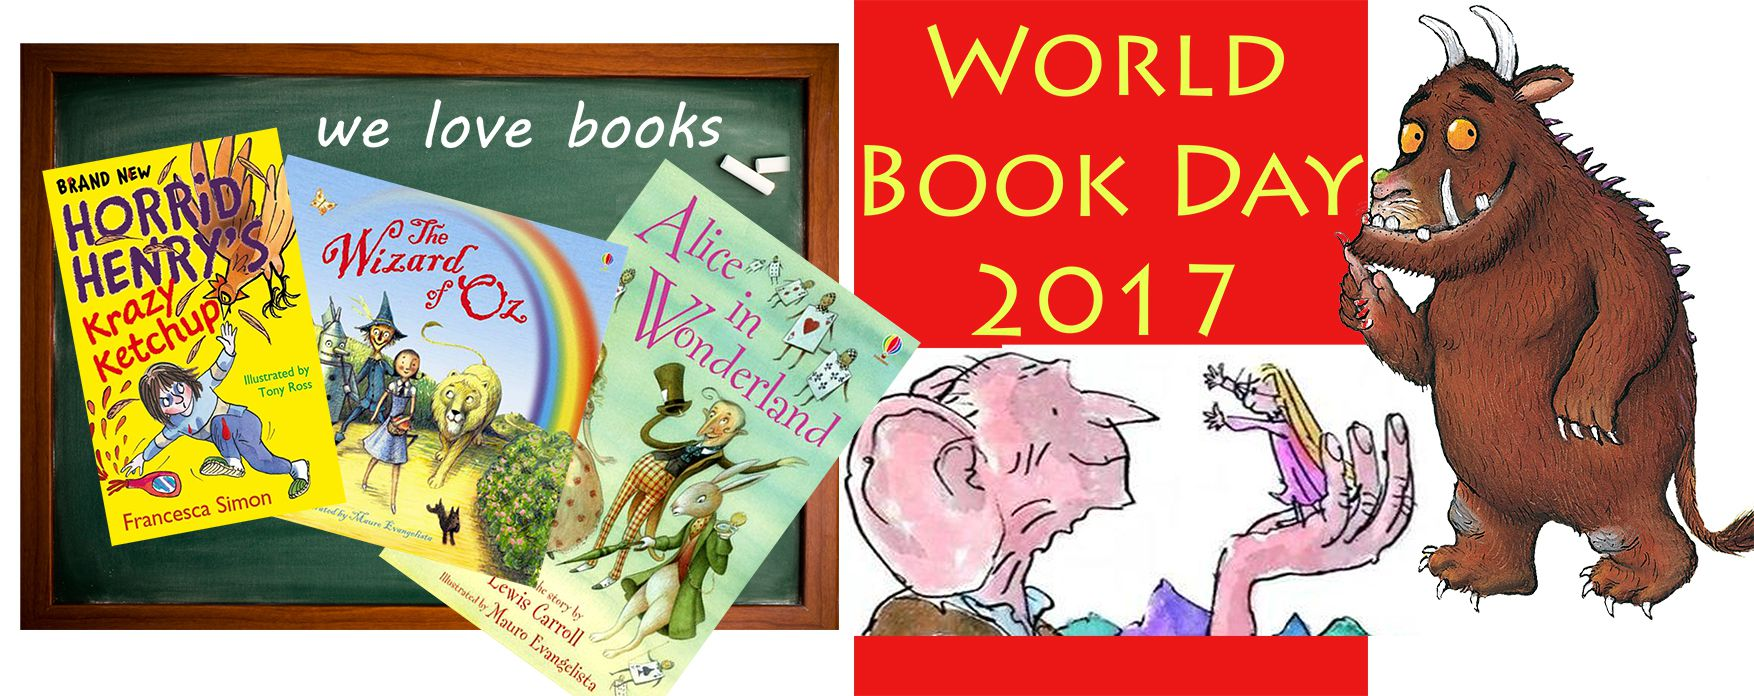 10 best costumes for World Book Day 2017